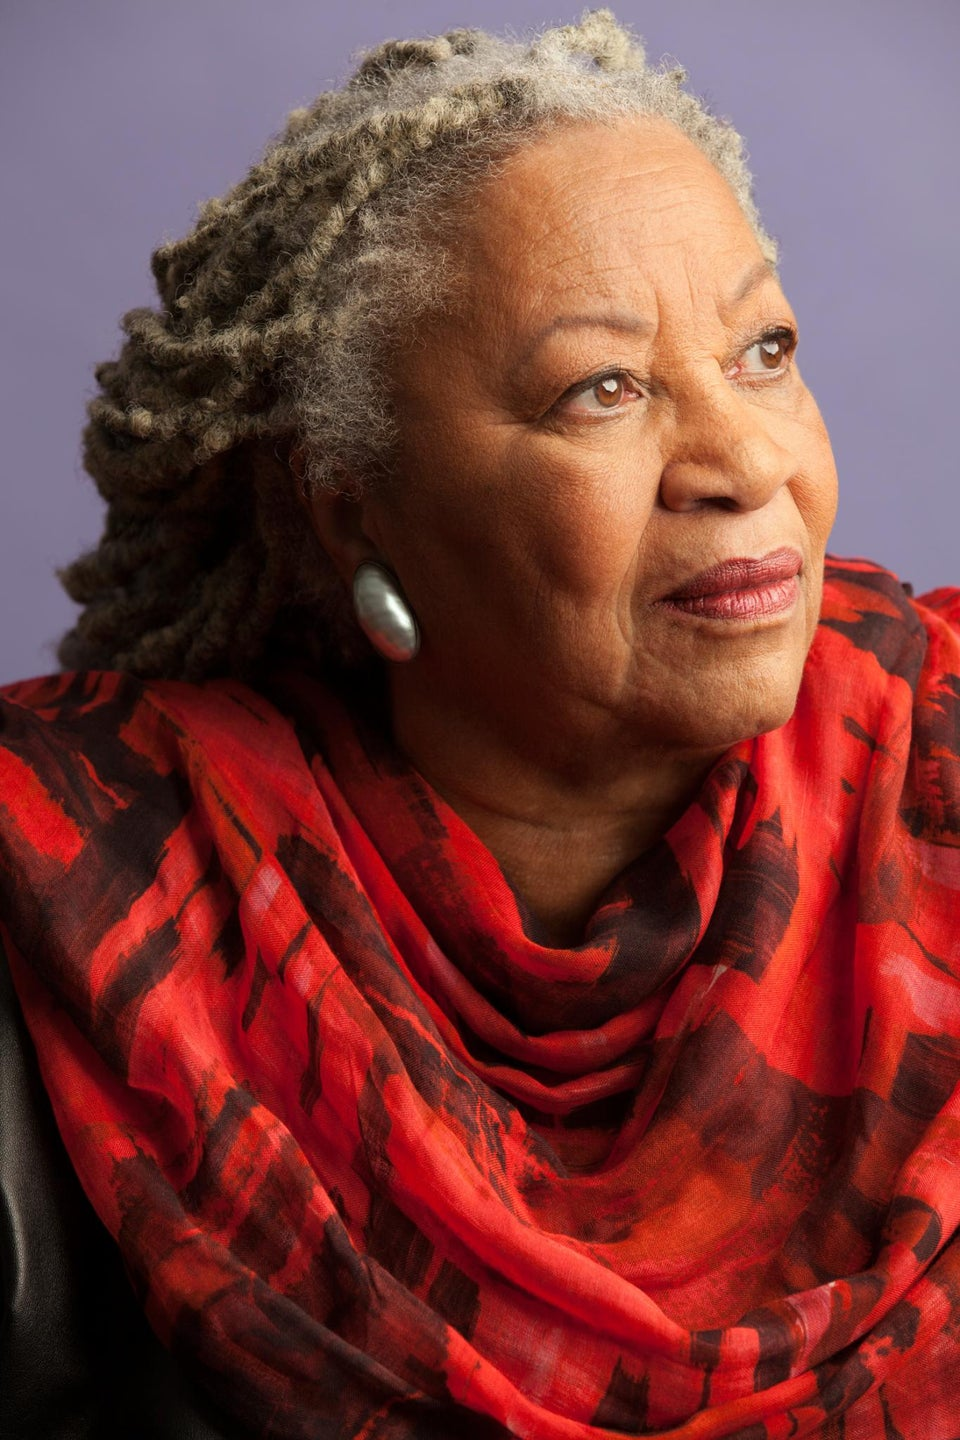 ICYMI: Iconic Author Toni Morrison Just Received The Ultimate Honor From Princeton University